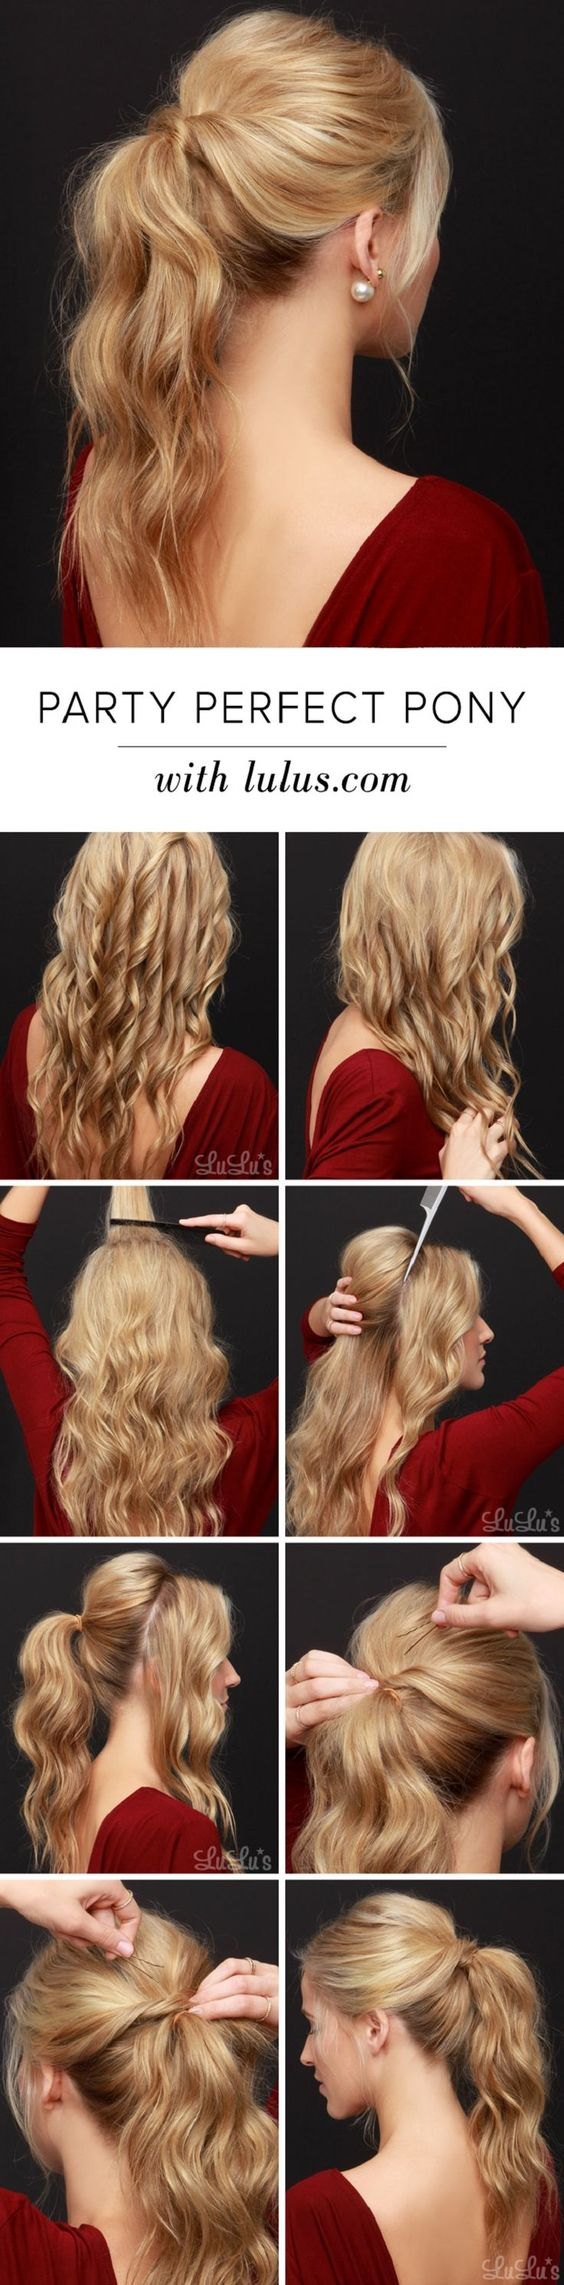 Party Perfect Ponytail Hair Tutorial - 12 Party Perfect Beauty Tutorials That'll Make You Sparkle | GleamItUp: